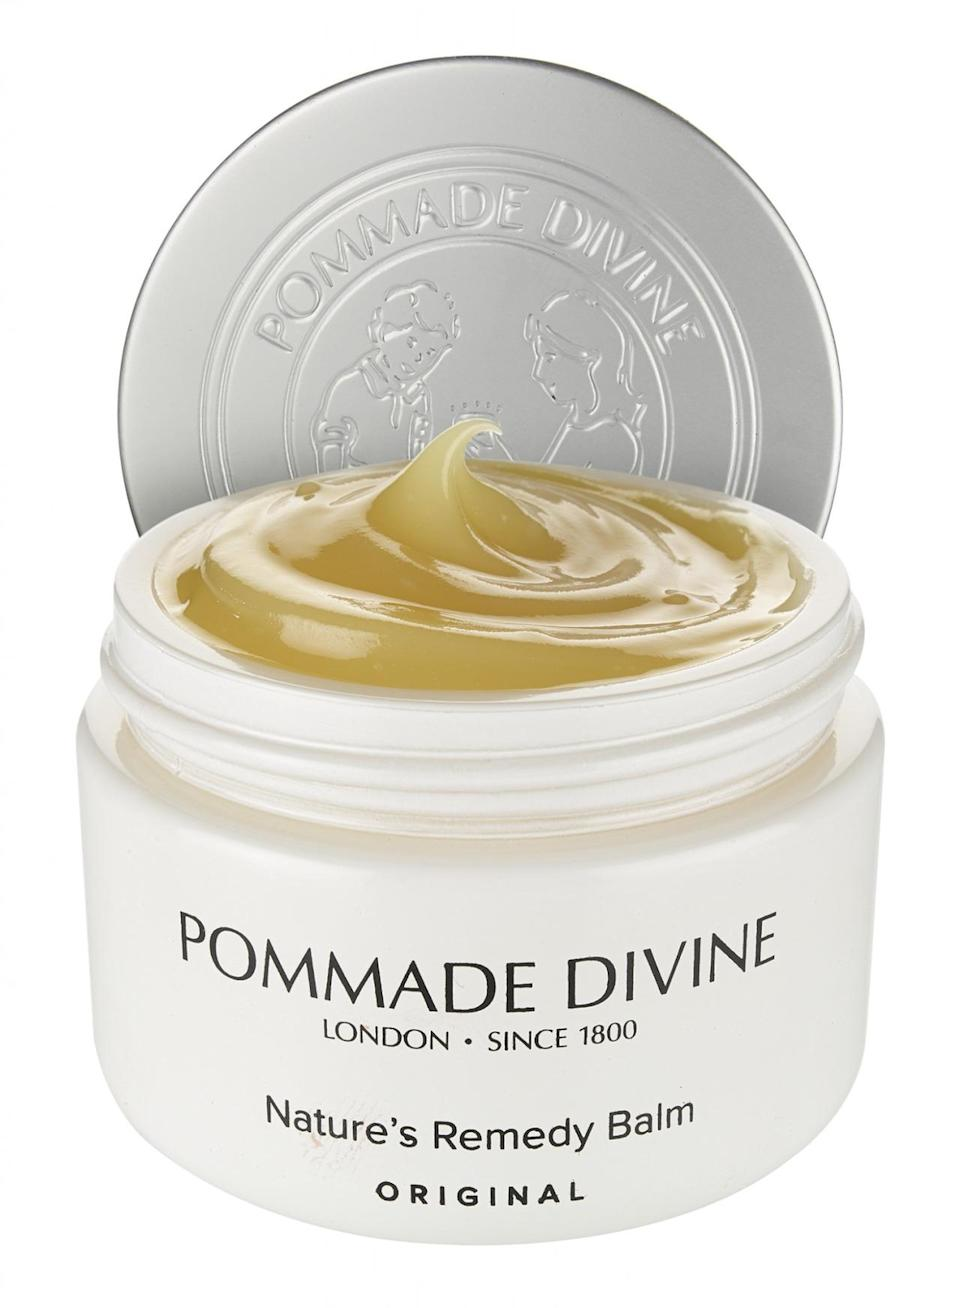 <p>Chemists first sold Pommade Divine's balm from Butler & Co. in the U.K. to the royals more than 200 years ago, and it still uses the same four healing essential oils to this day. With the help of cloves, benzoin, cinnamon, and nutmeg, Pommade Divine heals dryness, scrapes, bruises, and rough heels or elbows. (Photo: Pommade Divine)</p>